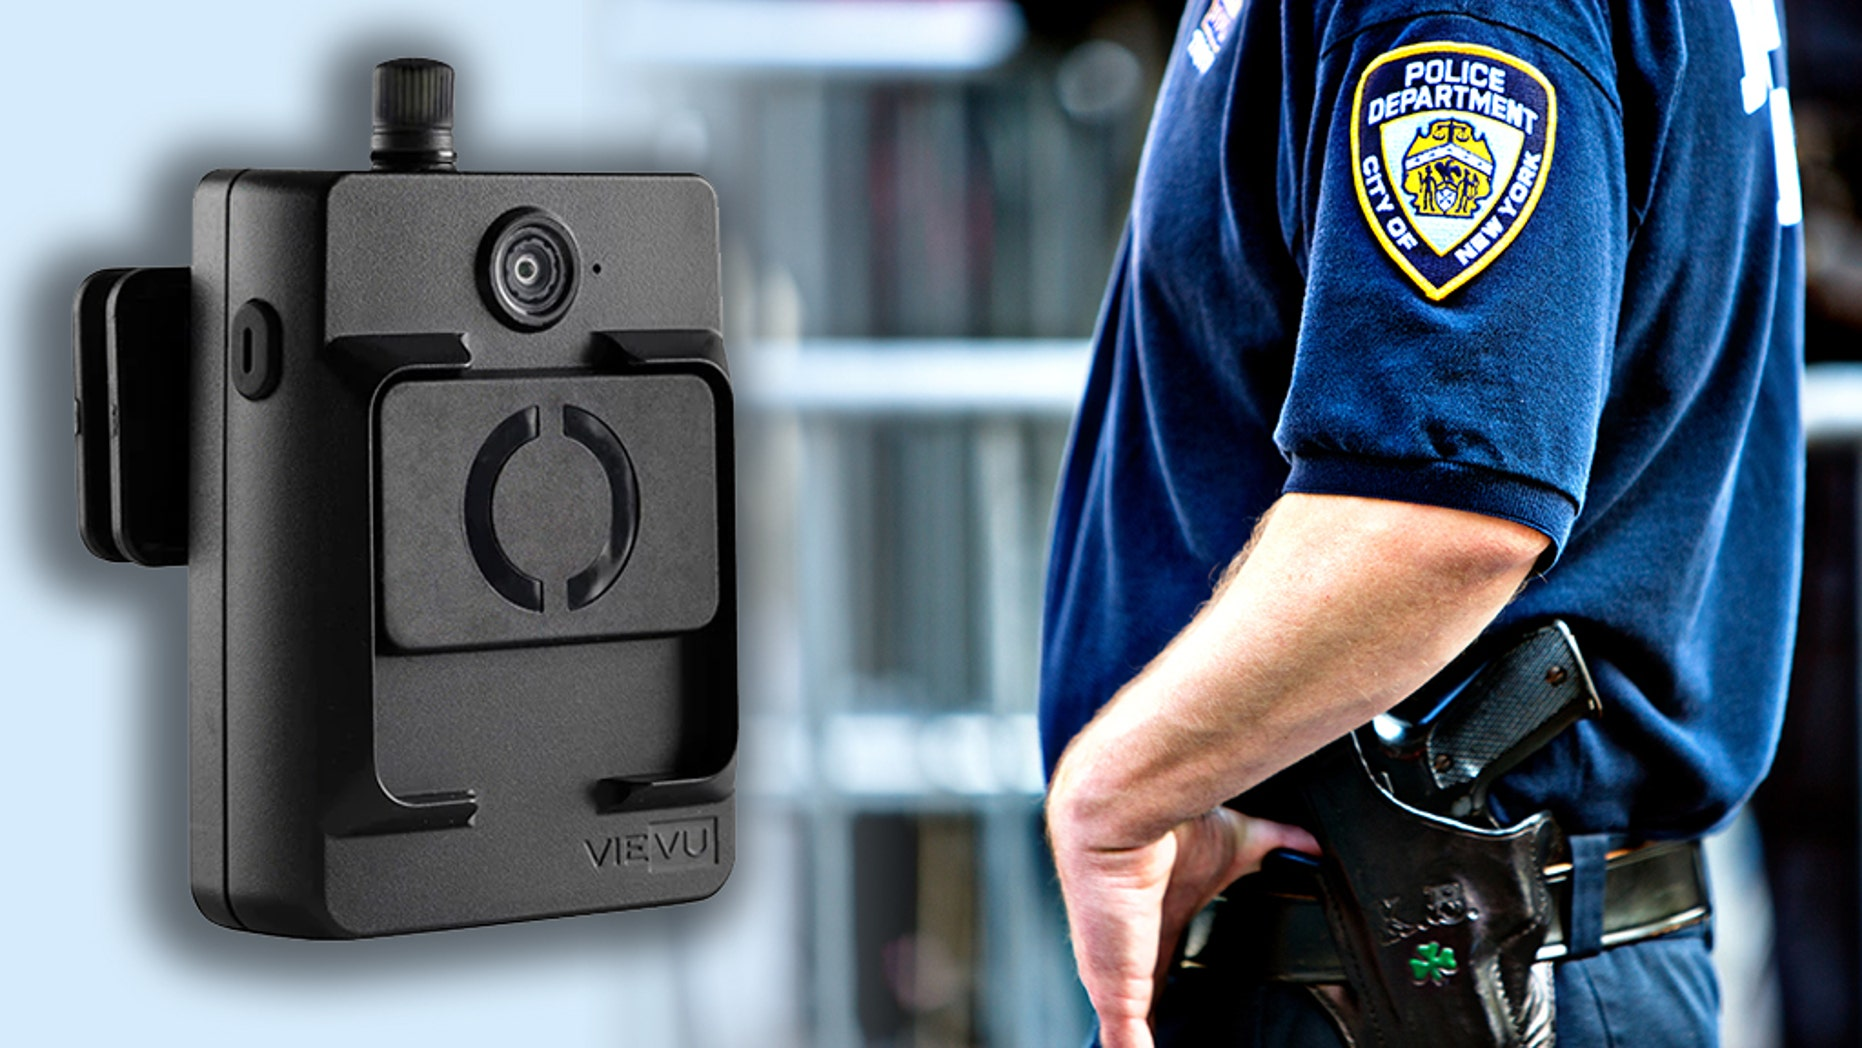 Almost 3,000 NYPD body cameras pulled after one explodes in police precinct